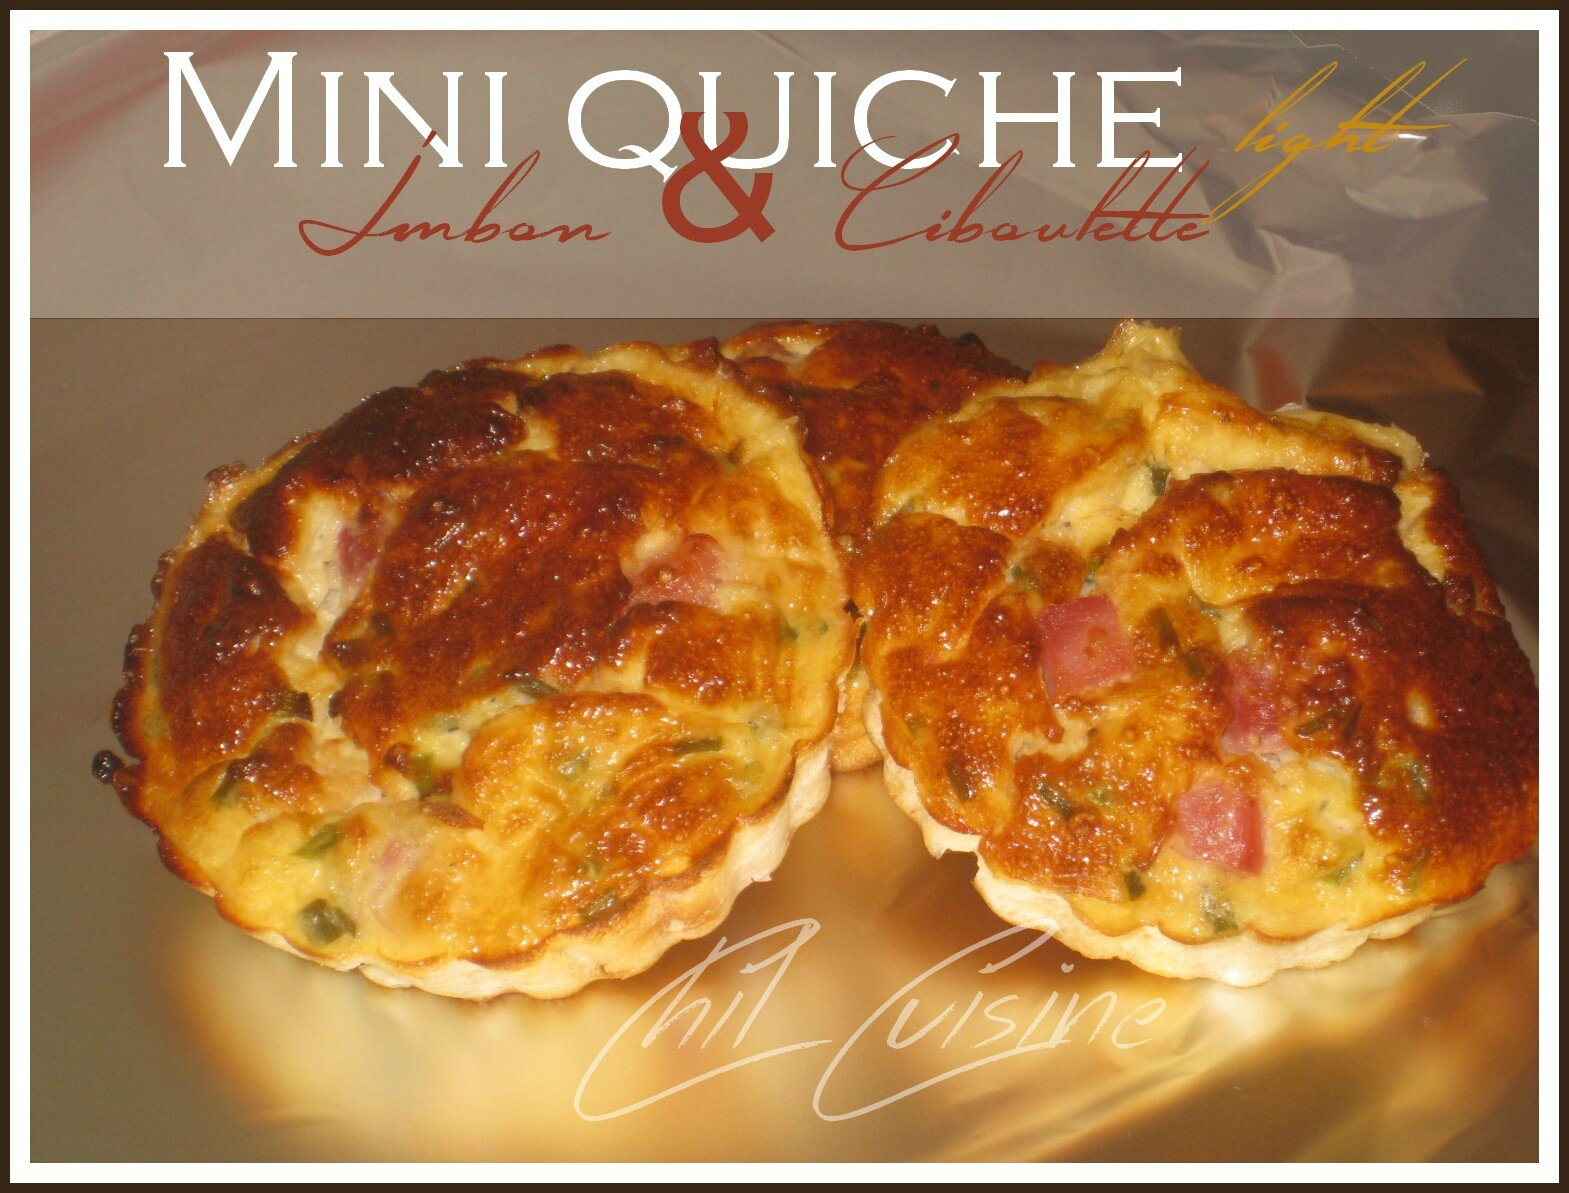 Mini quiche Jambon -ciboulette {light}